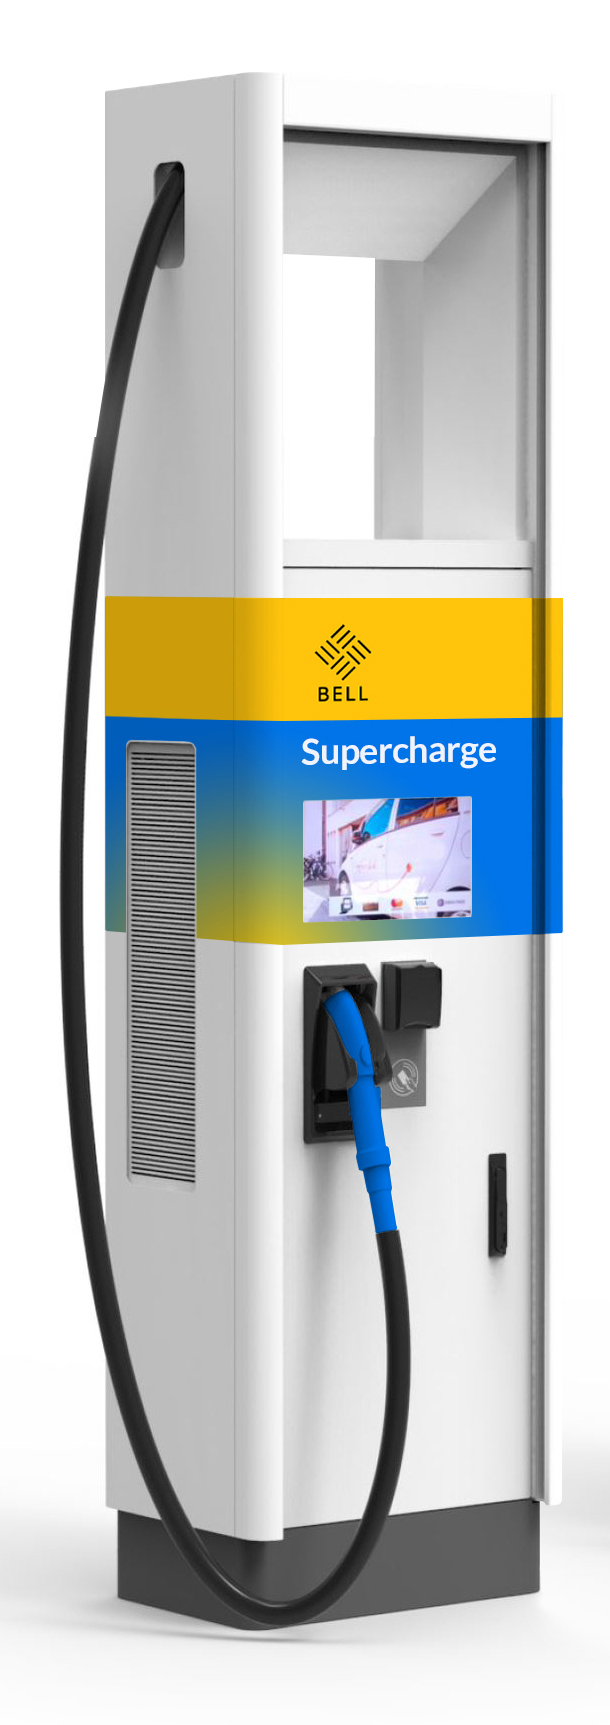 Bell Hub Supercharge